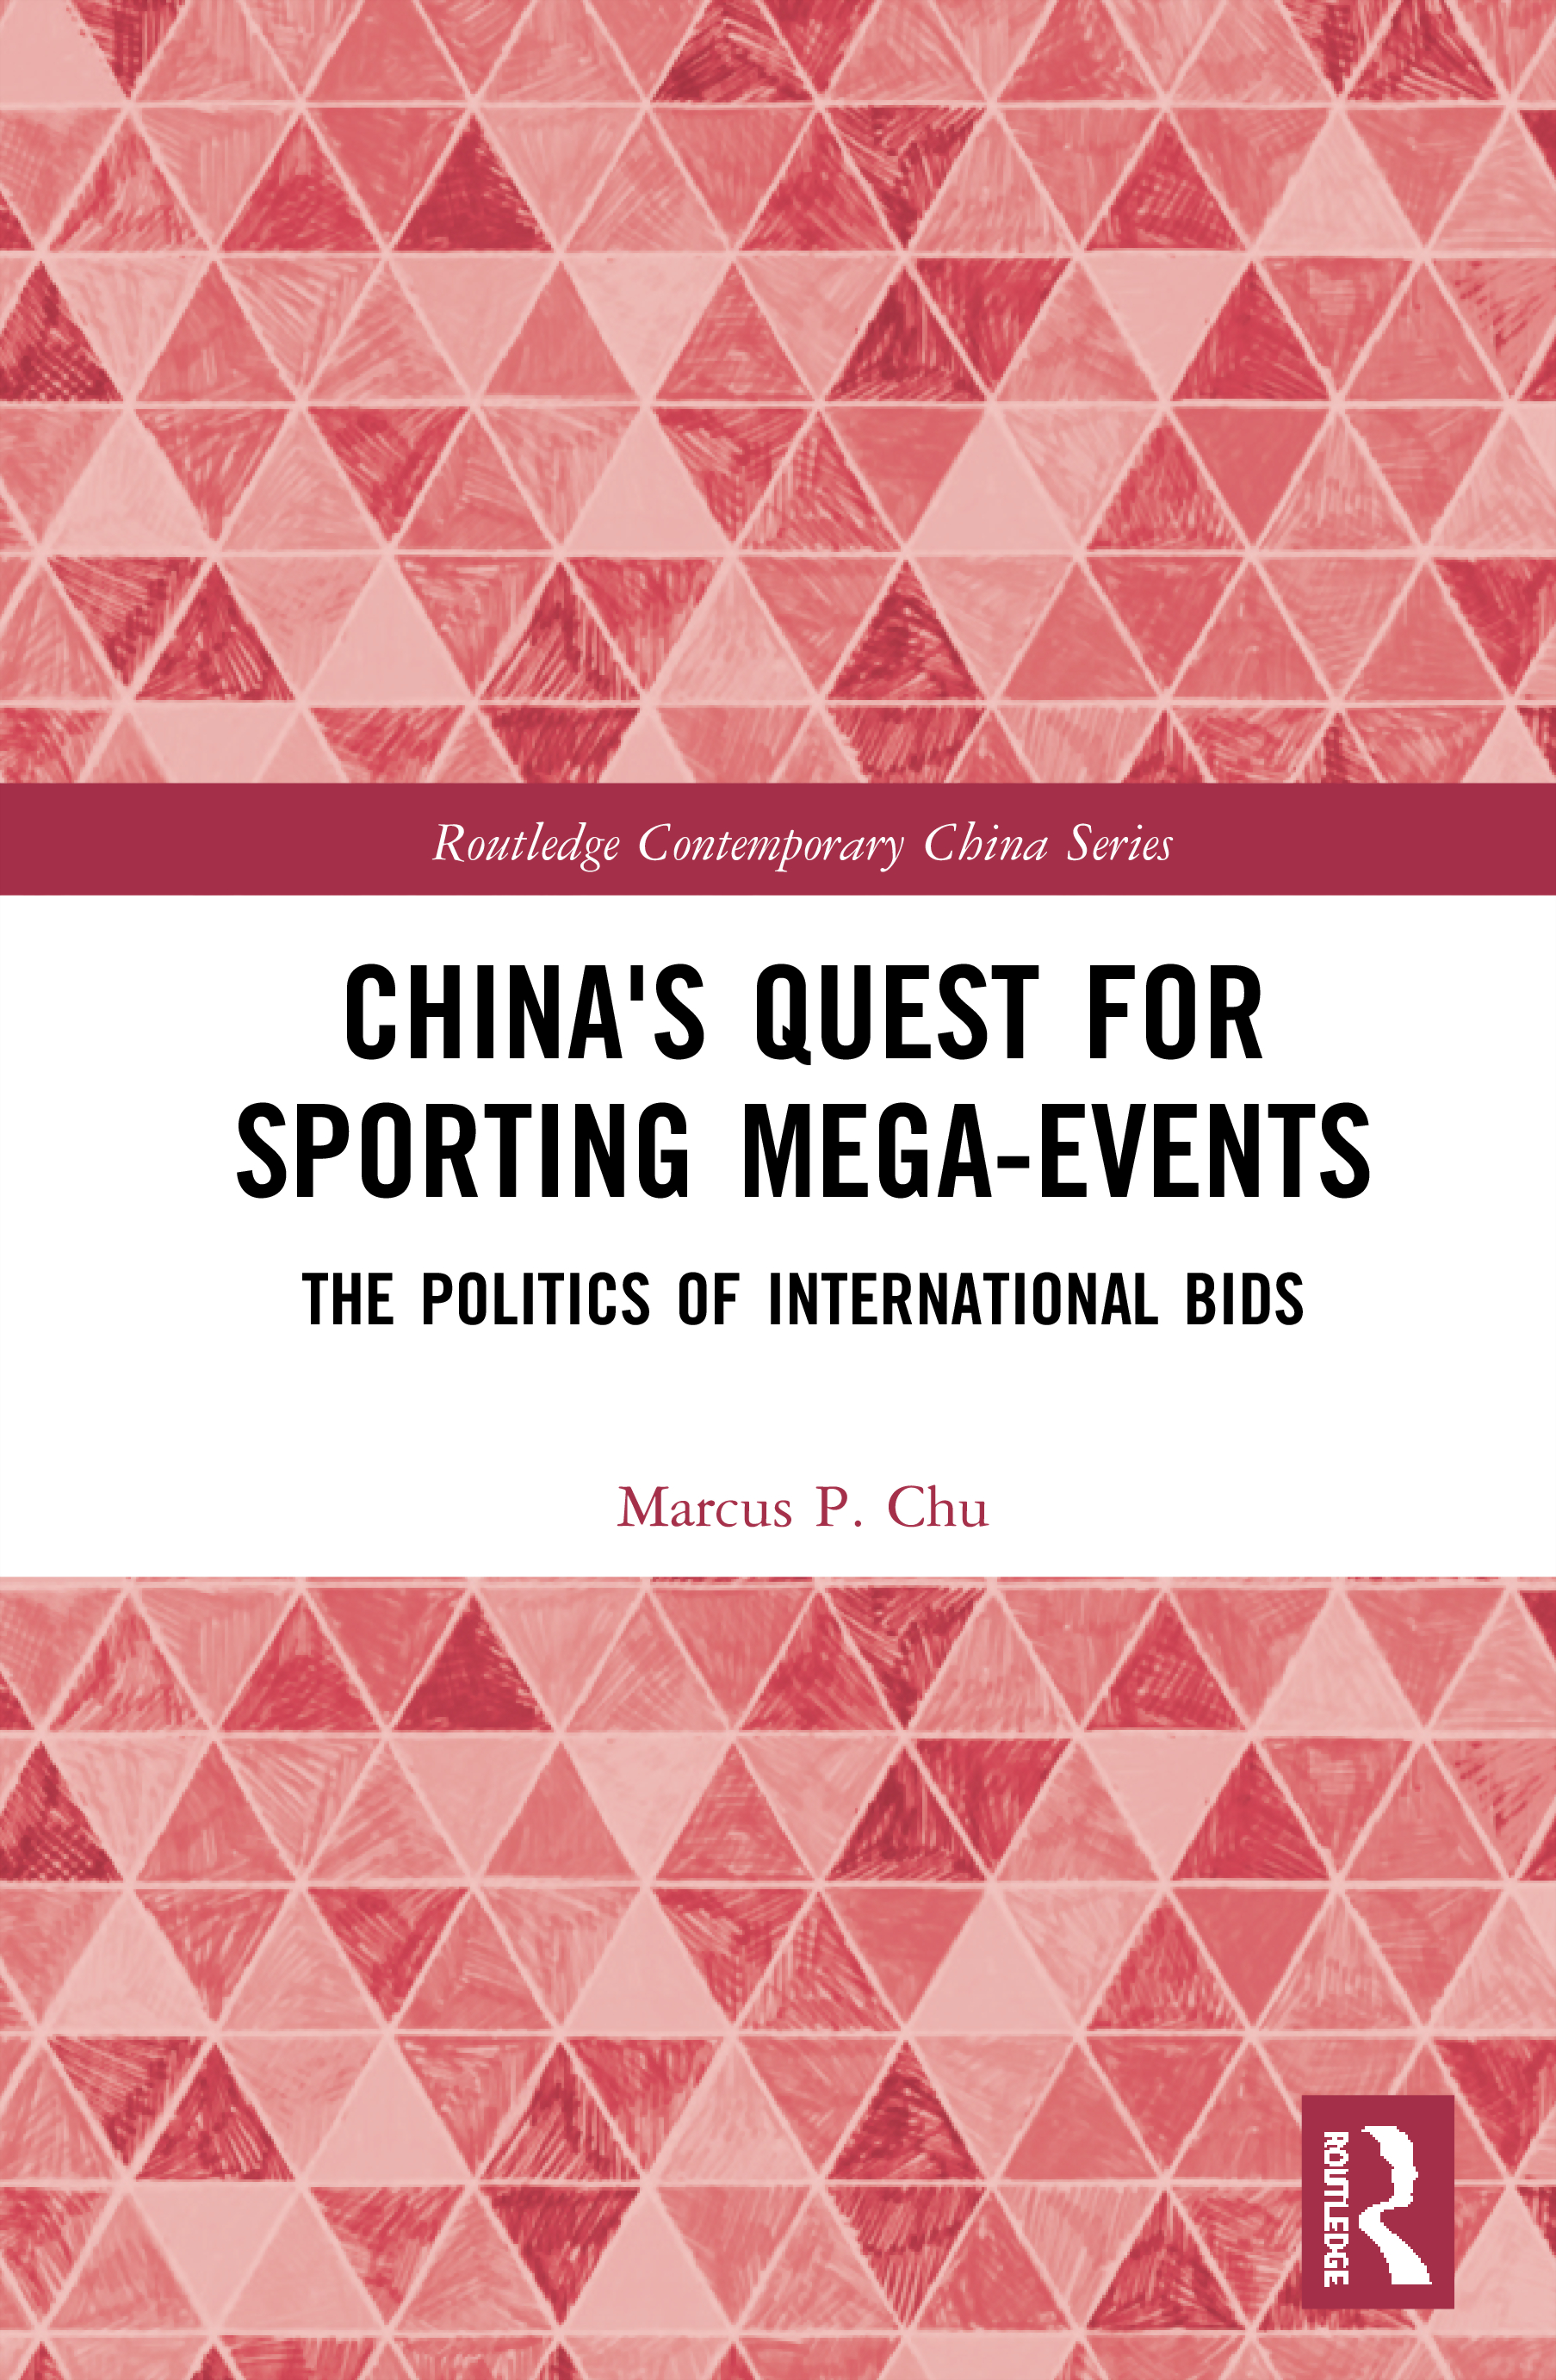 China's Quest for Sporting Mega-Events: The Politics of International Bids book cover